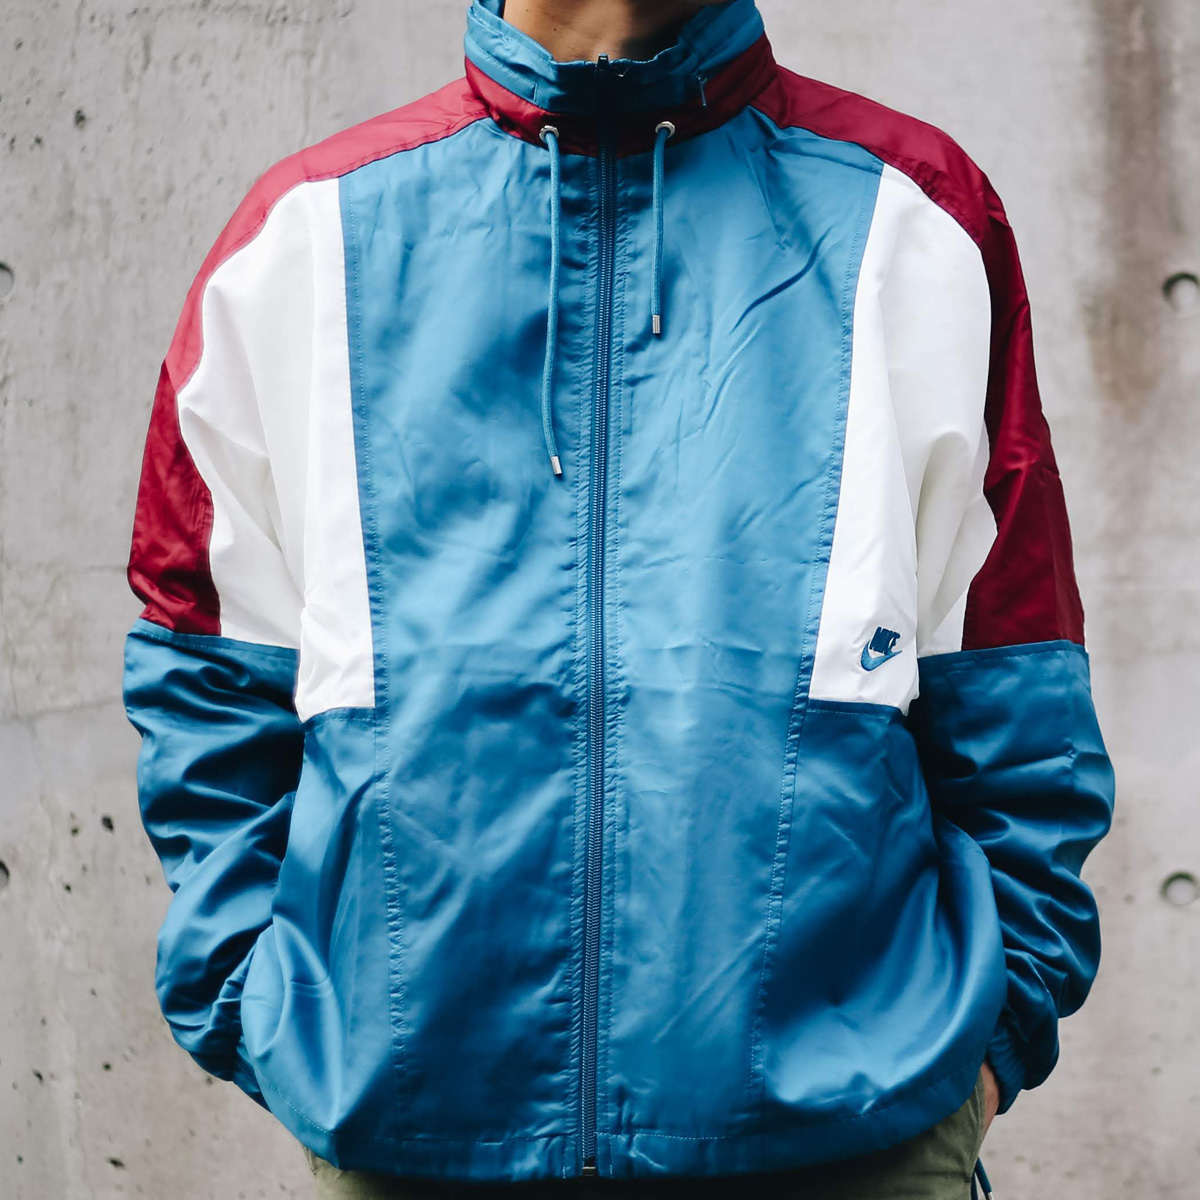 NIKE AS M NSW RE-ISSUE JKT WVN(ナイキ リ イシュー ウーブン ジャケット)GREEN ABYSS/TEAM RED/SAIL/GREEN ABYSS【メンズ ジャケット】18HO-I